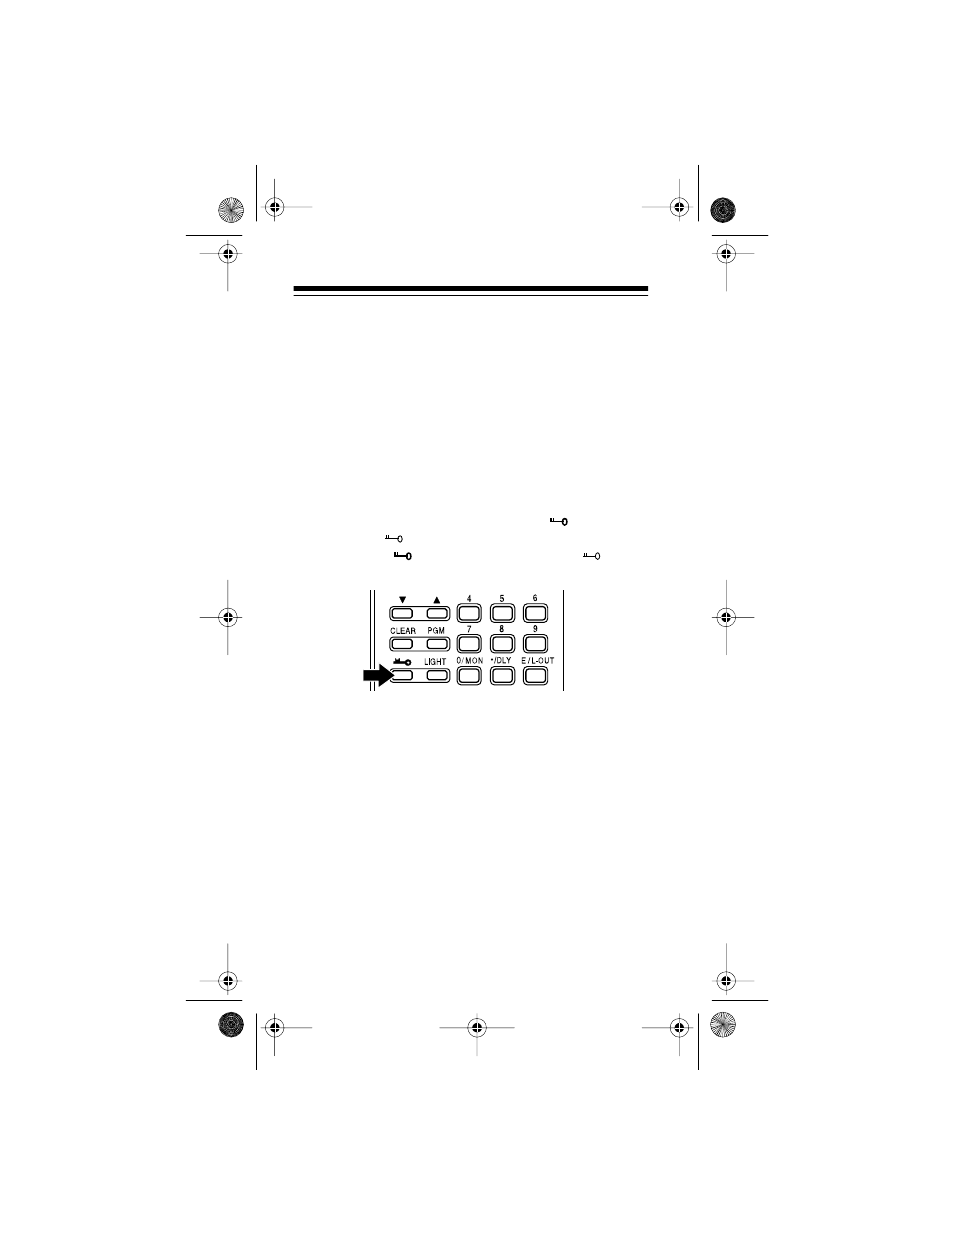 Special features, Using the keylock, Locking out channels | Radio Shack PRO-70  User Manual | Page 32 / 56